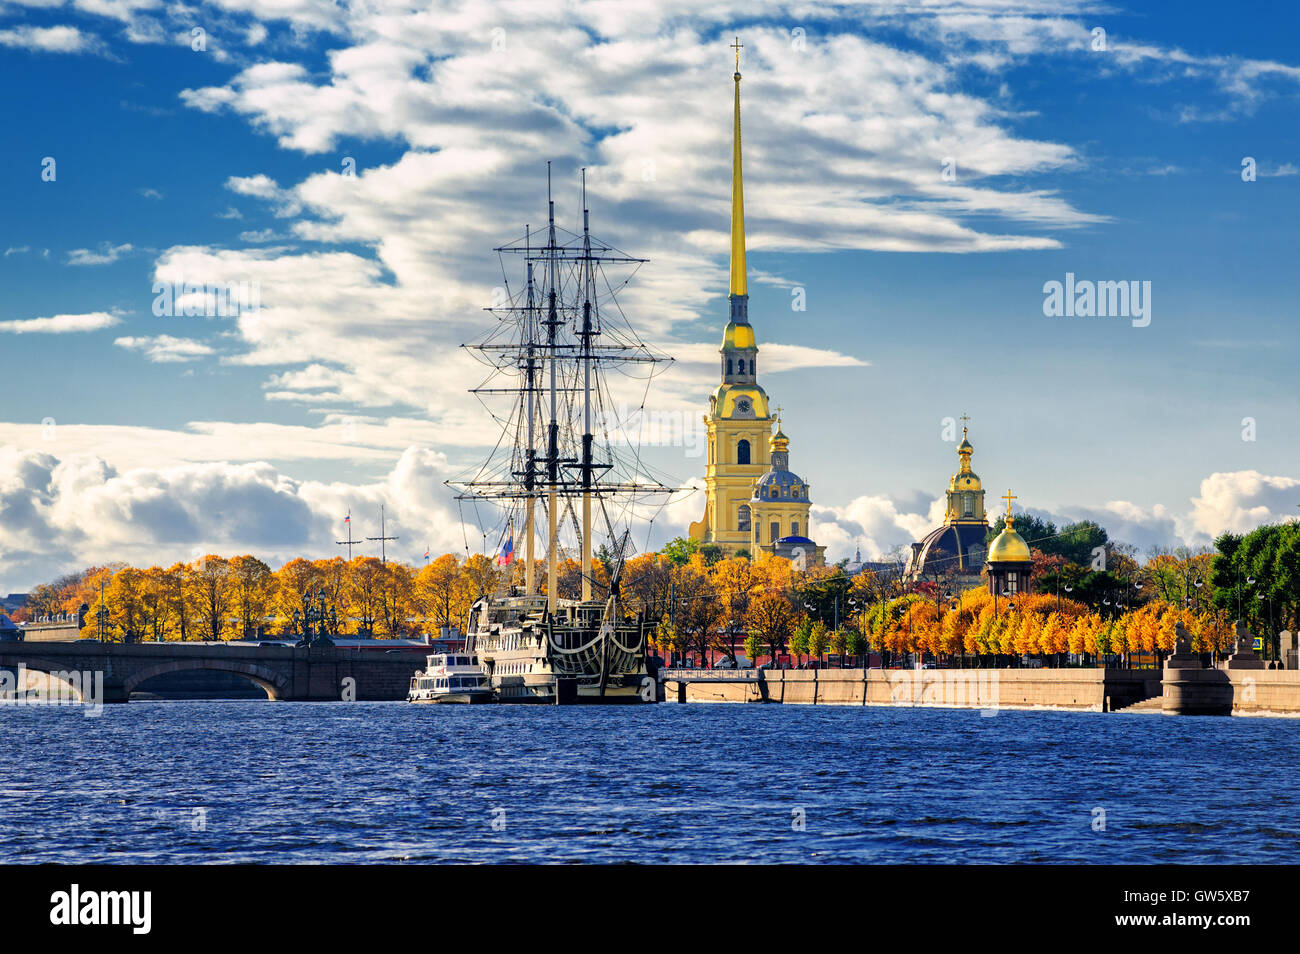 St Petersburg, Russia. Sailing ship anchored by the Peter and Paul Fortress. - Stock Image